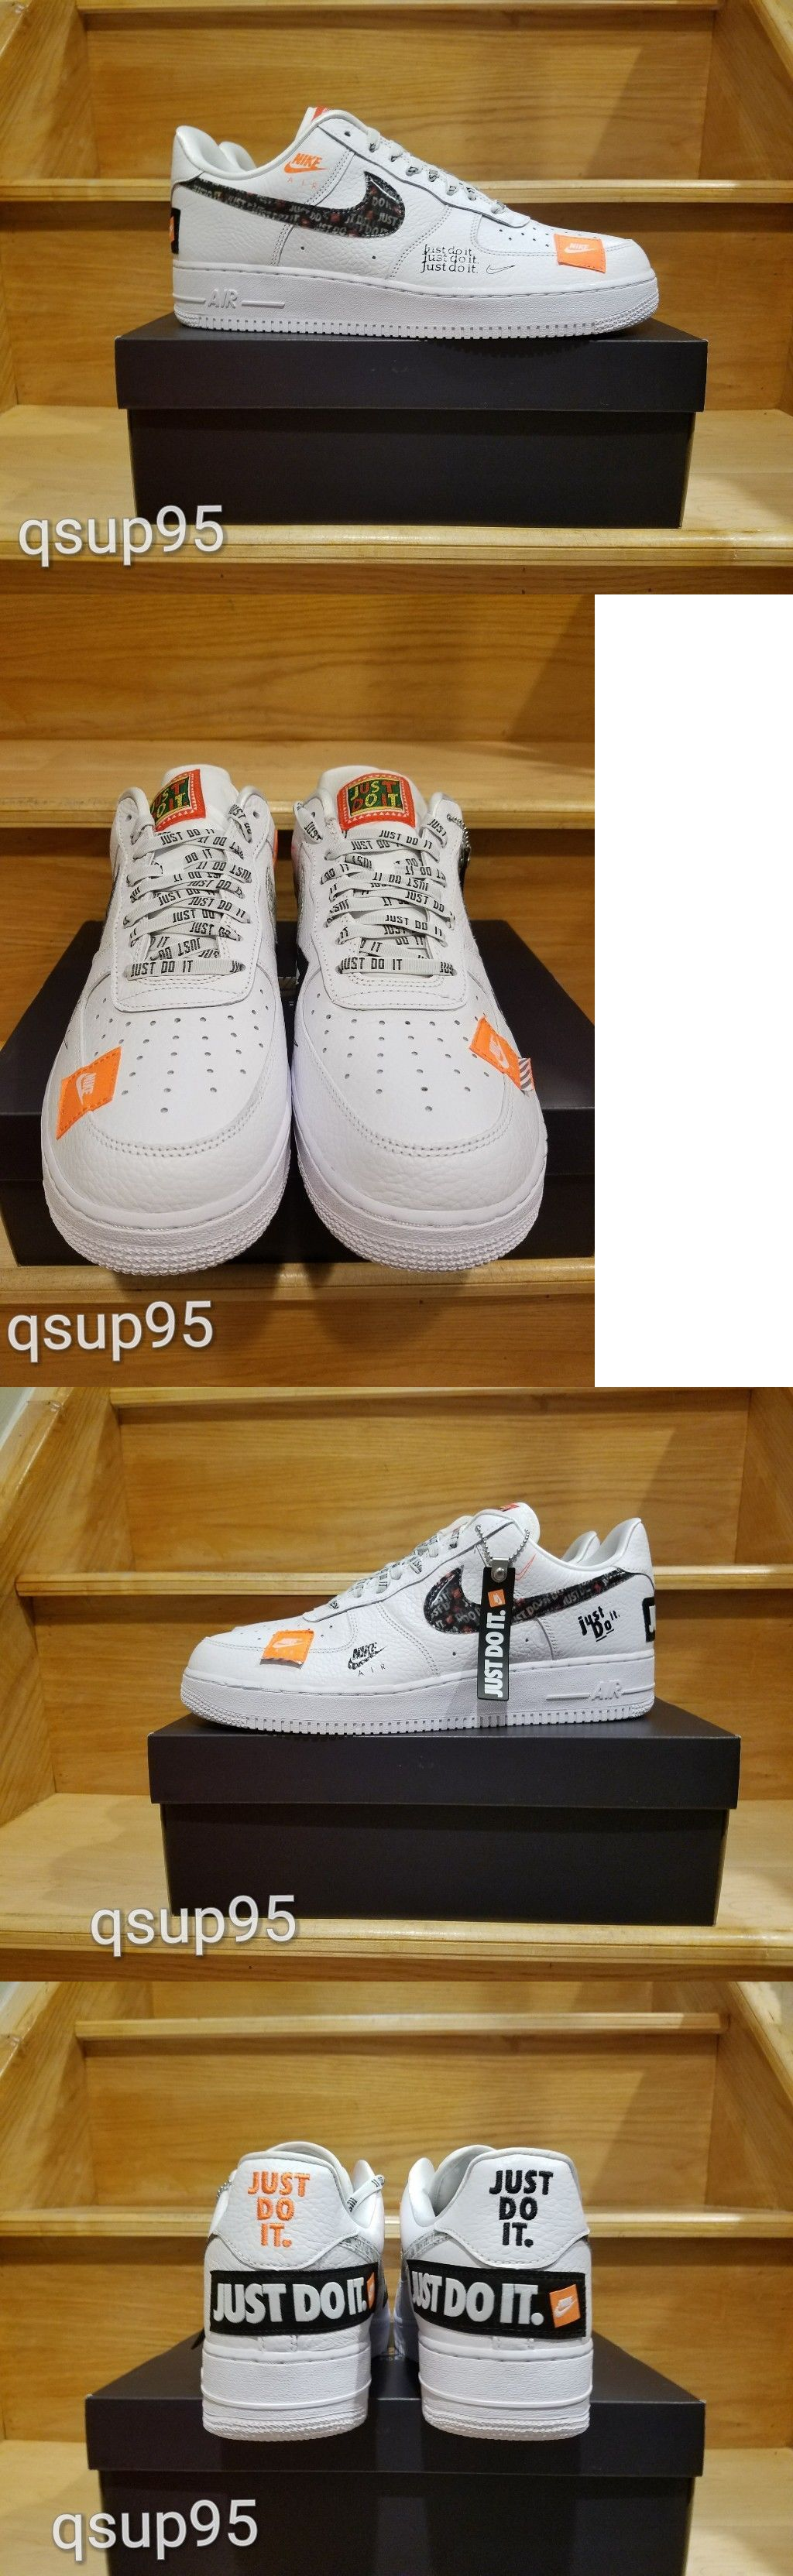 b6e2aa953b11 Athletic 15709  Nike Air Force 1 Low Prm White Black Ar7719 100 Men Gs Just